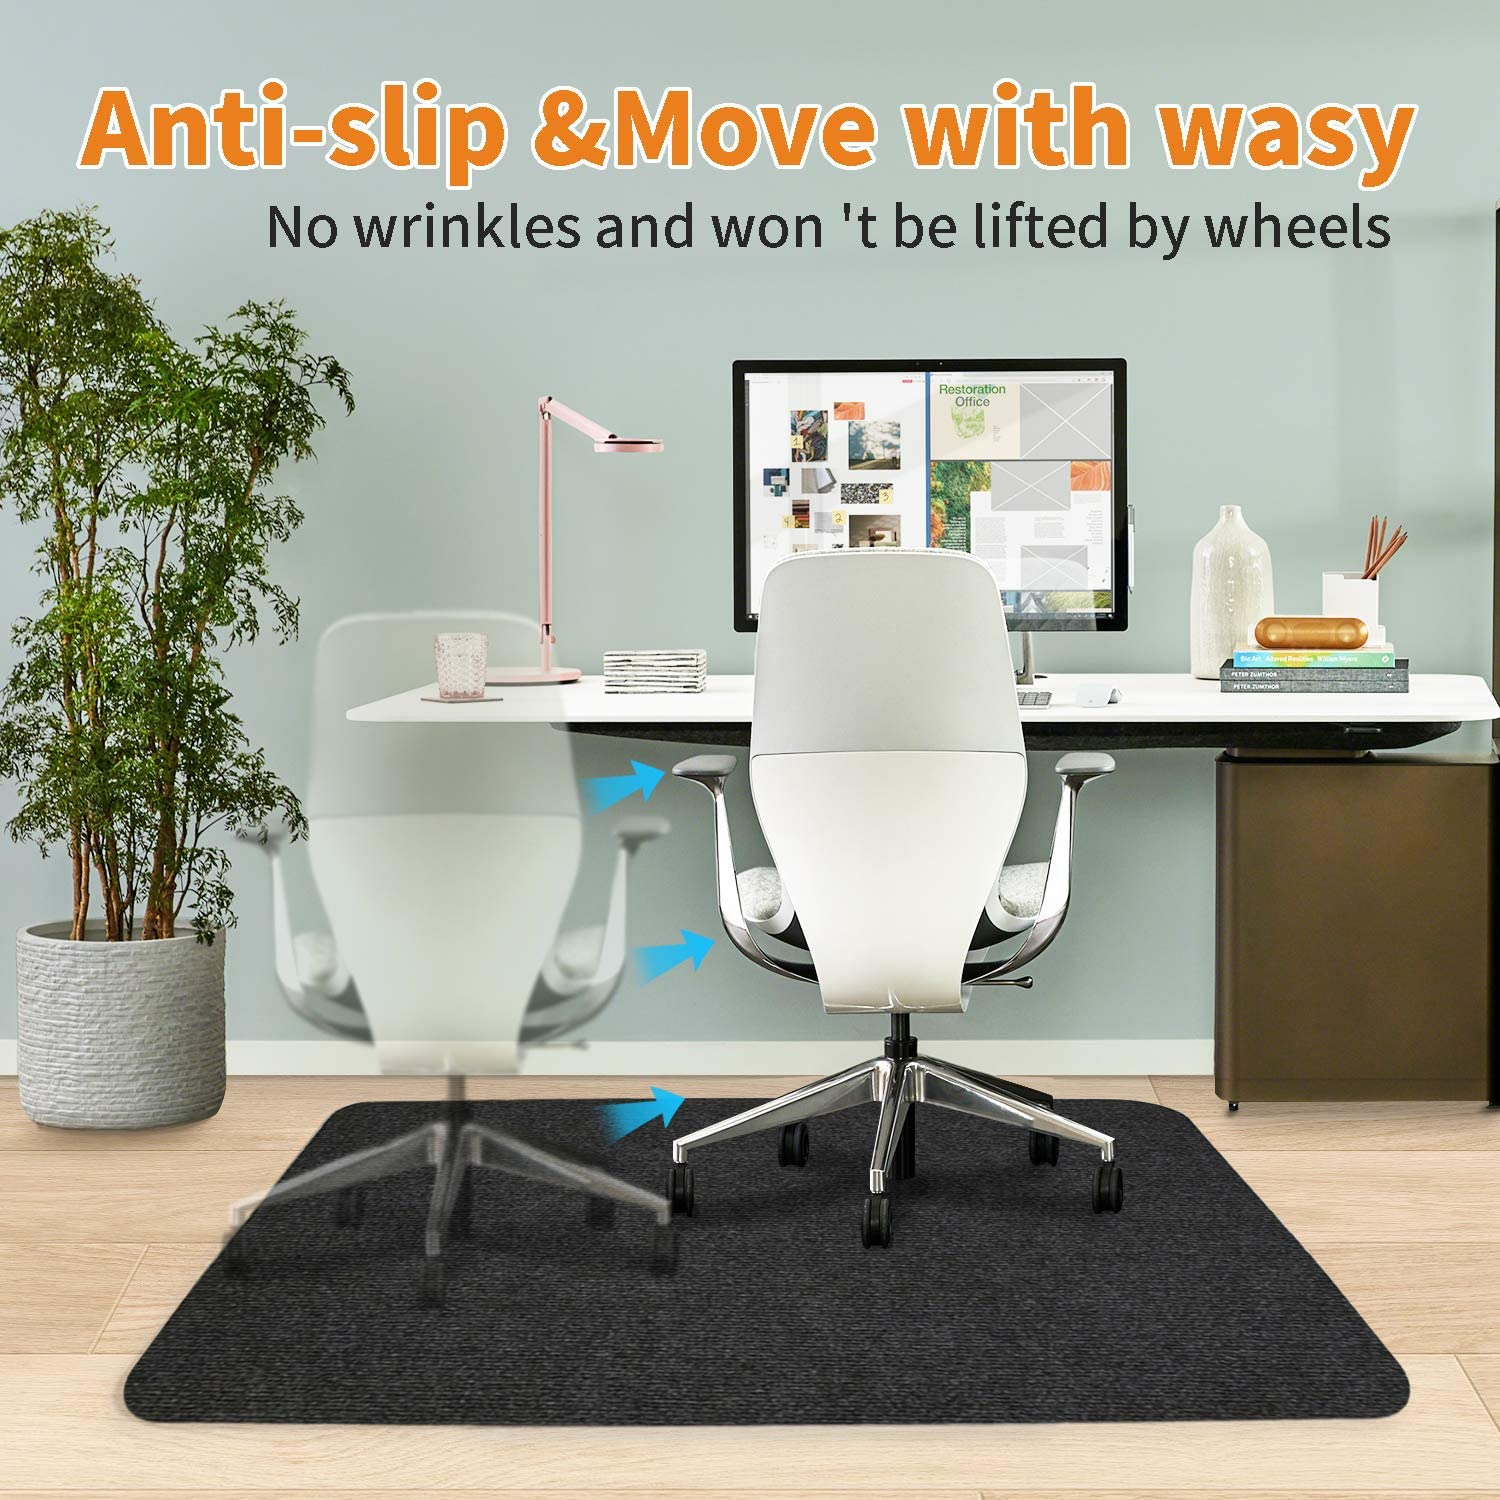 Not for Carpet Dark Gray Office Chair Mat for Hardwood//Tile Floor 55 x 36 Thick Under Hard Floor Protector Desk Mat for Rolling Chair and Computer Desk,Anti-Slip,Non-Curve,Multi-Purpose Rug